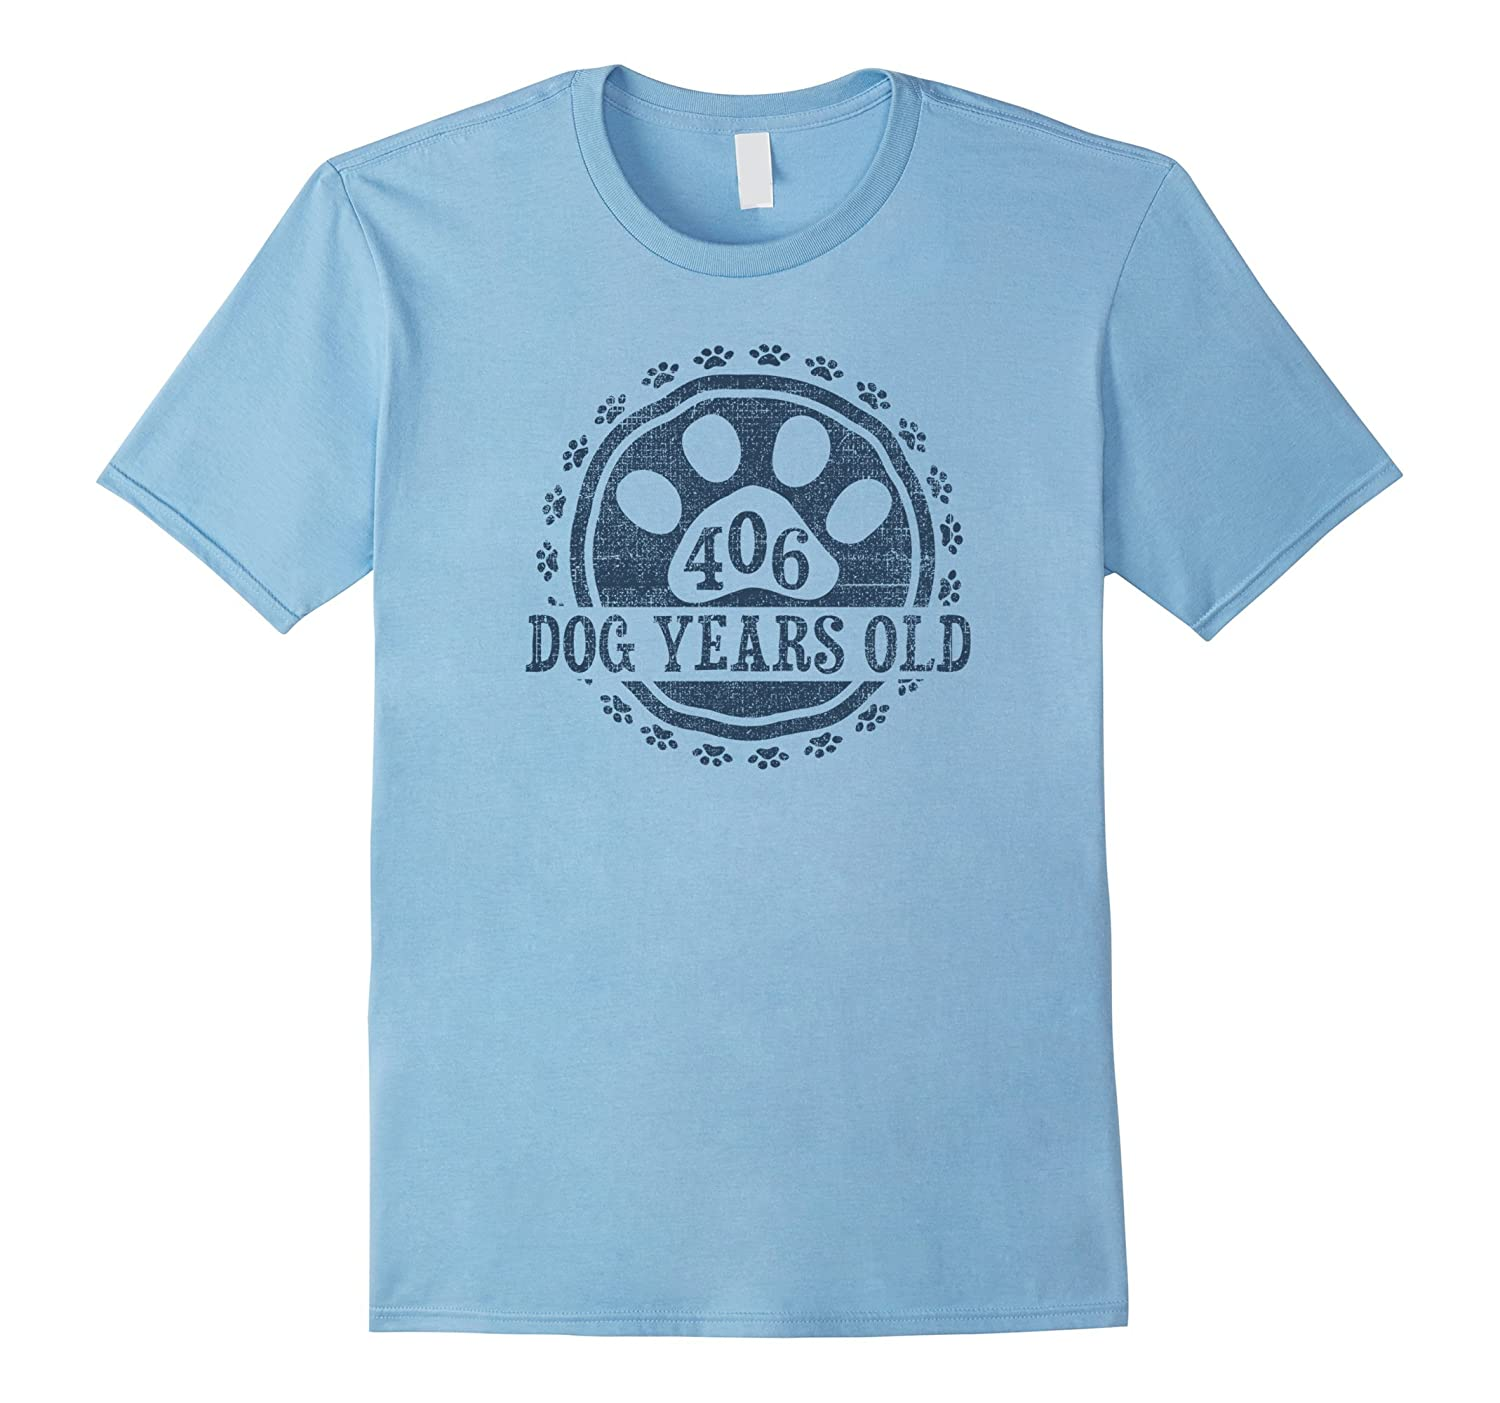 406 Dog Years Old 58 Human Yrs Old 58th Birthday Gift Shirt-TH